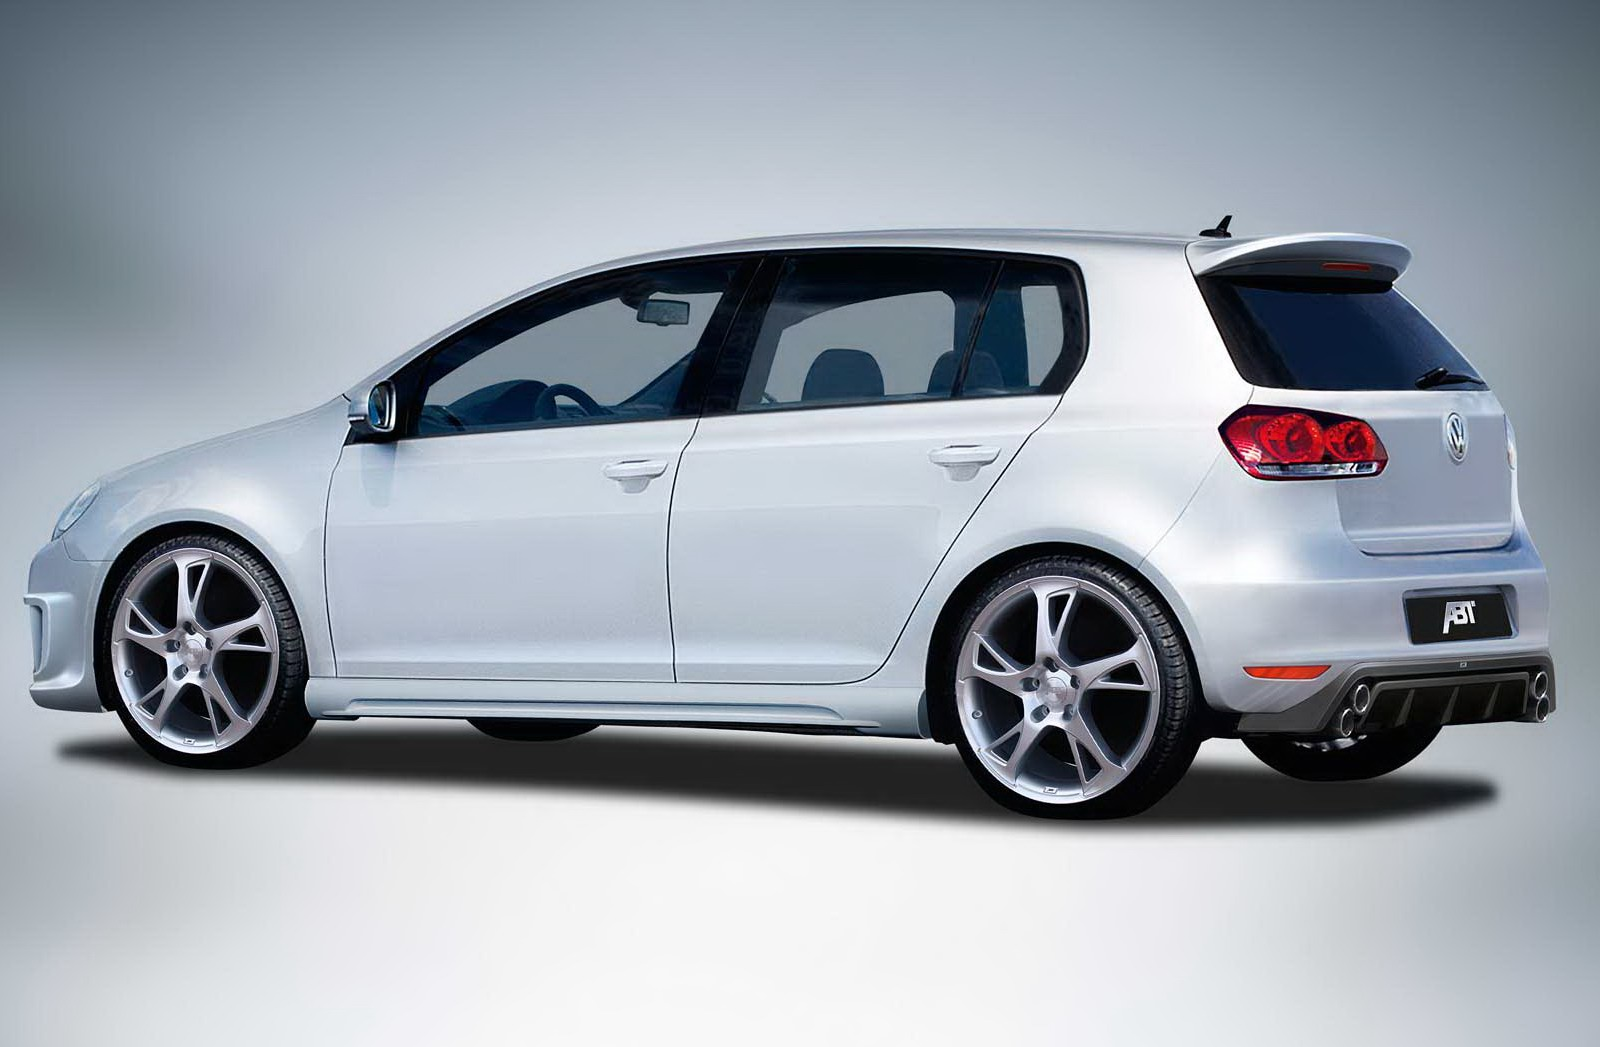 My perfect Volkswagen Golf 6. 3DTuning - probably the best car configurator!